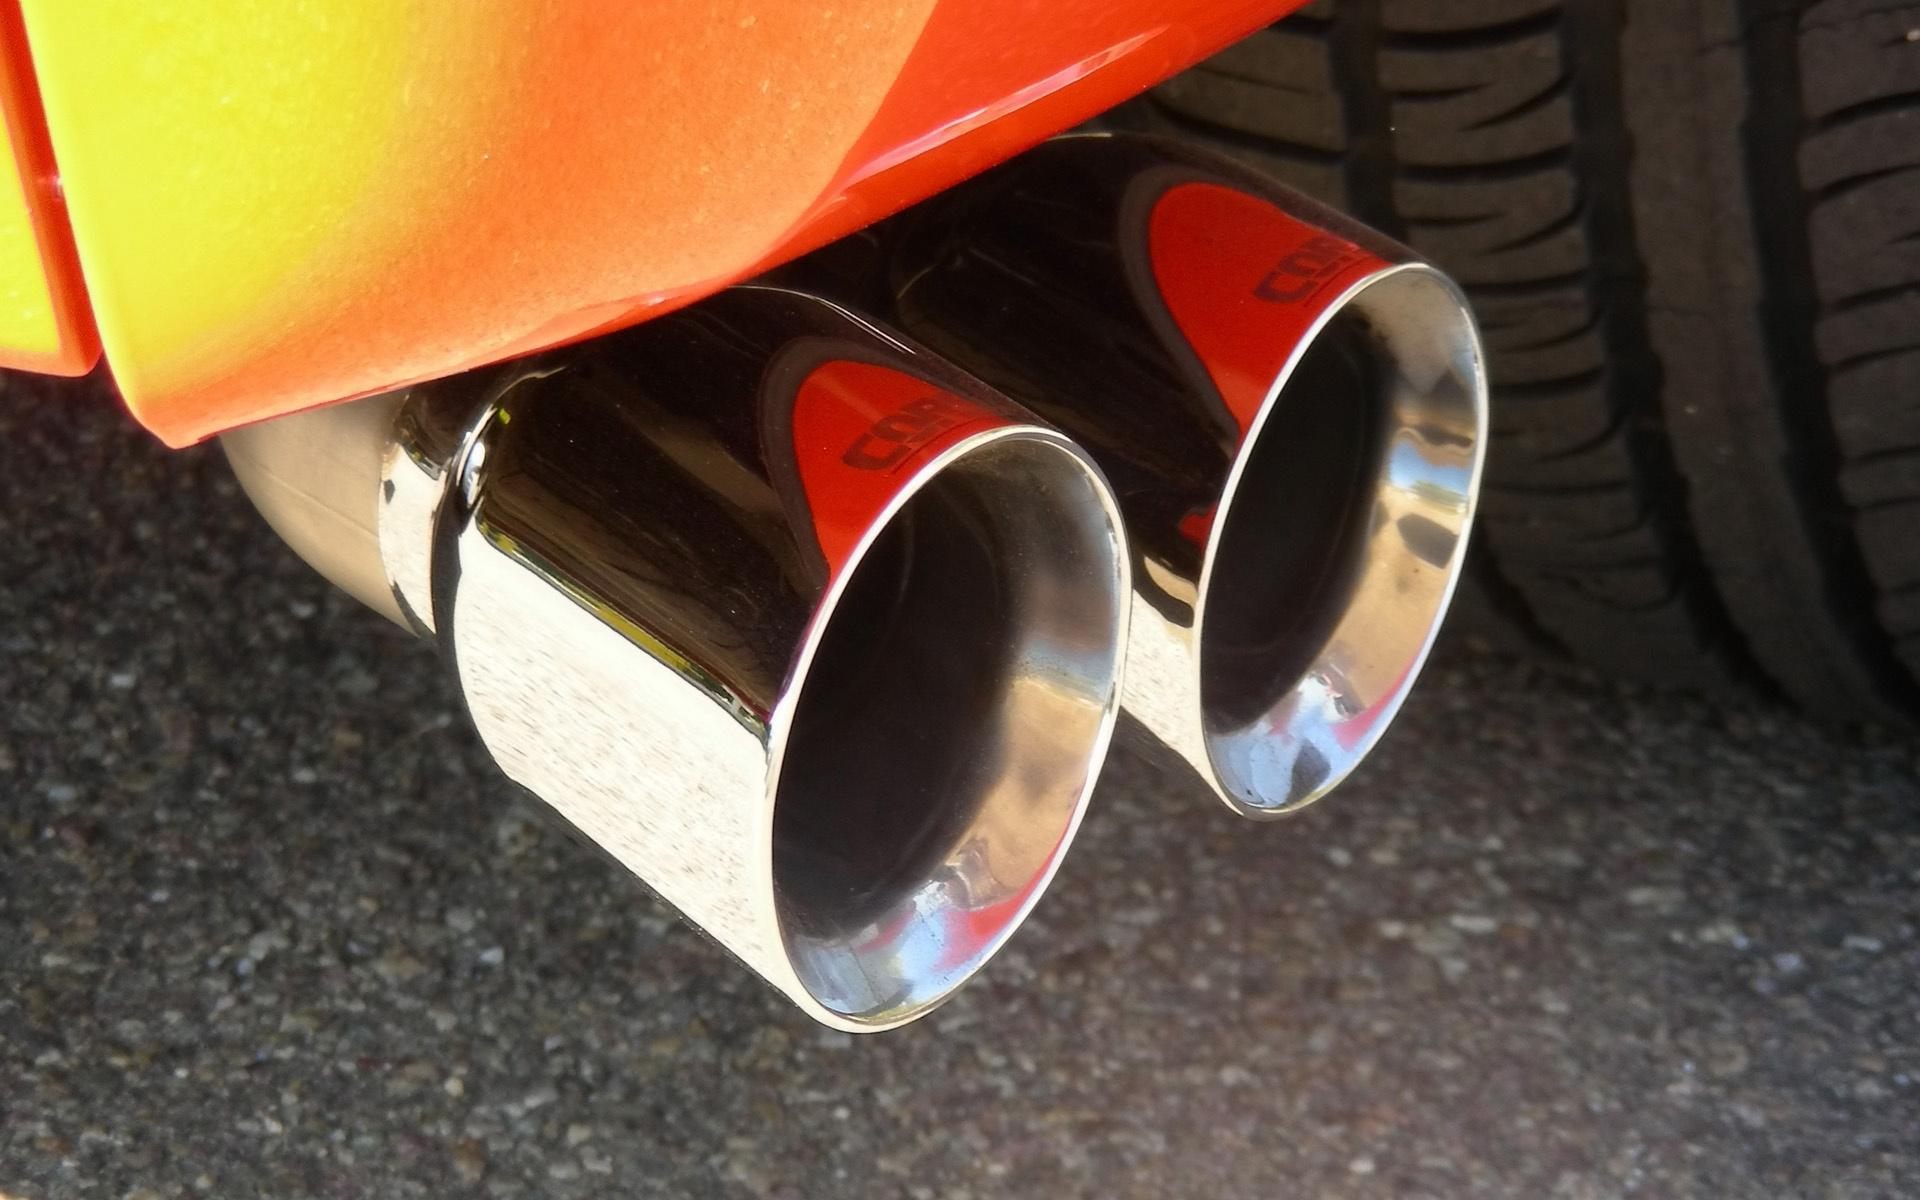 Mr Norms Dodge Hemi Ram 1500 Super Truck Tailpipes 1920x1200